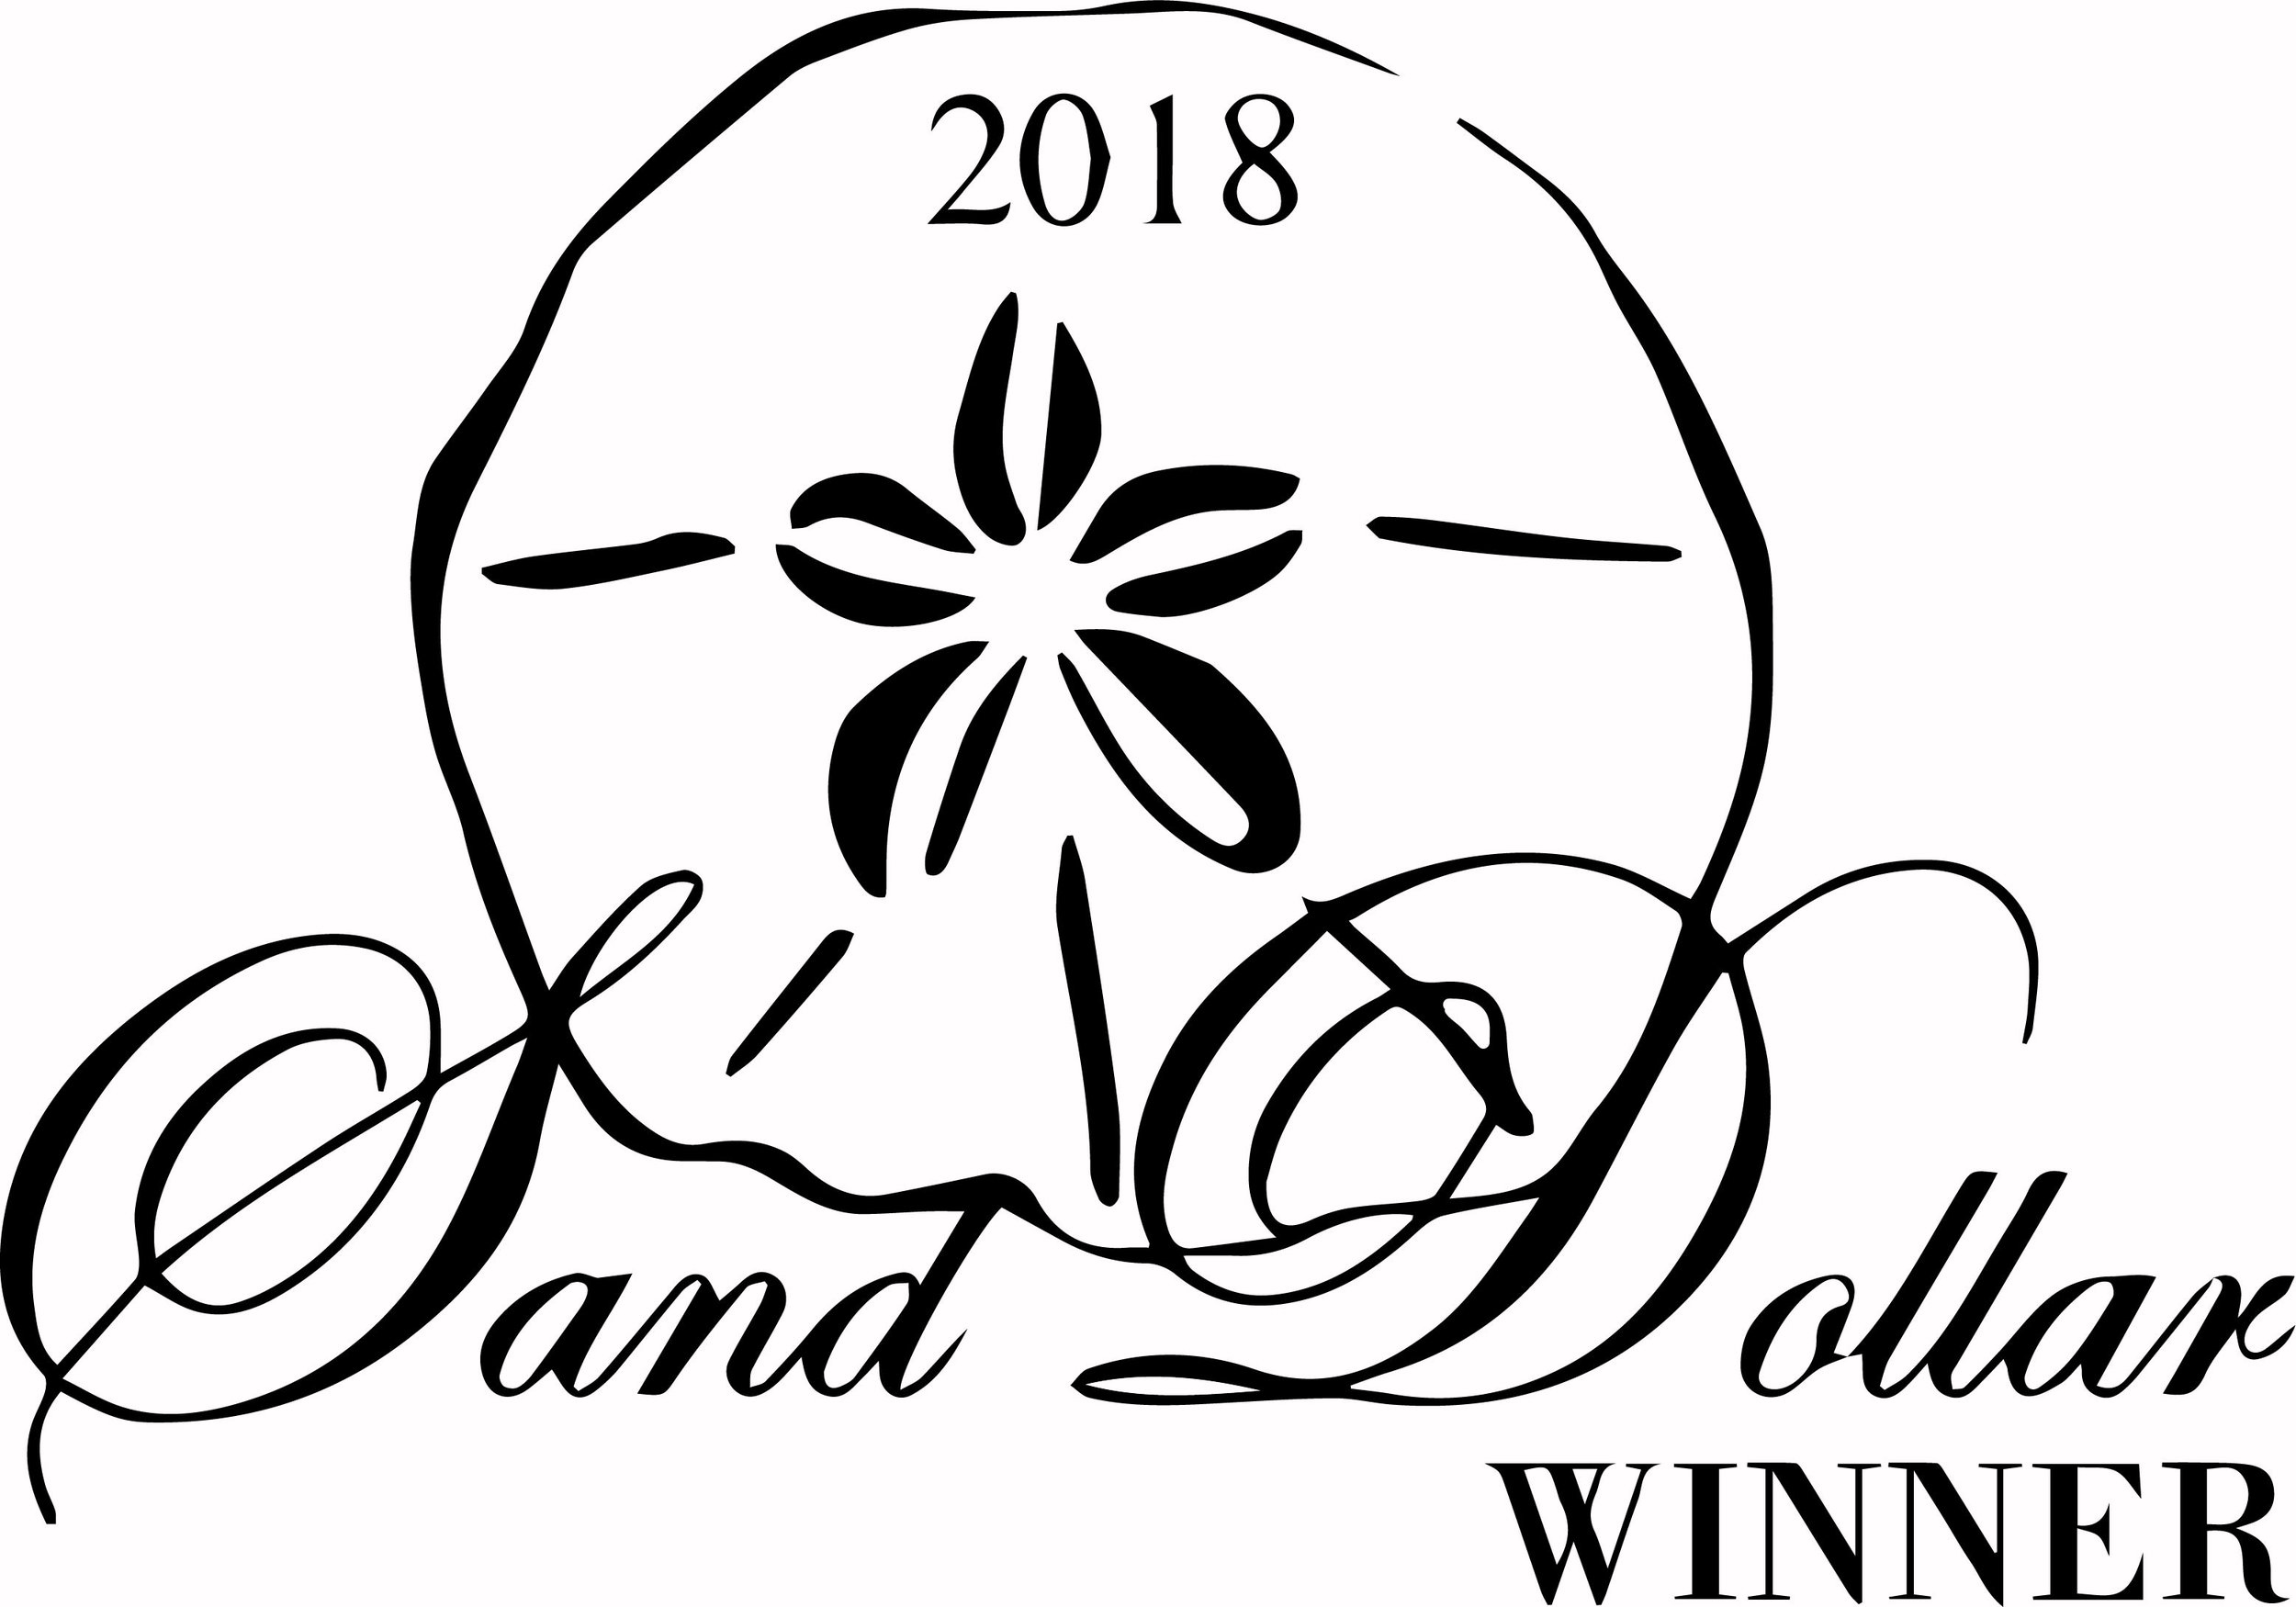 Sand Dollar WINNERlogo.jpg